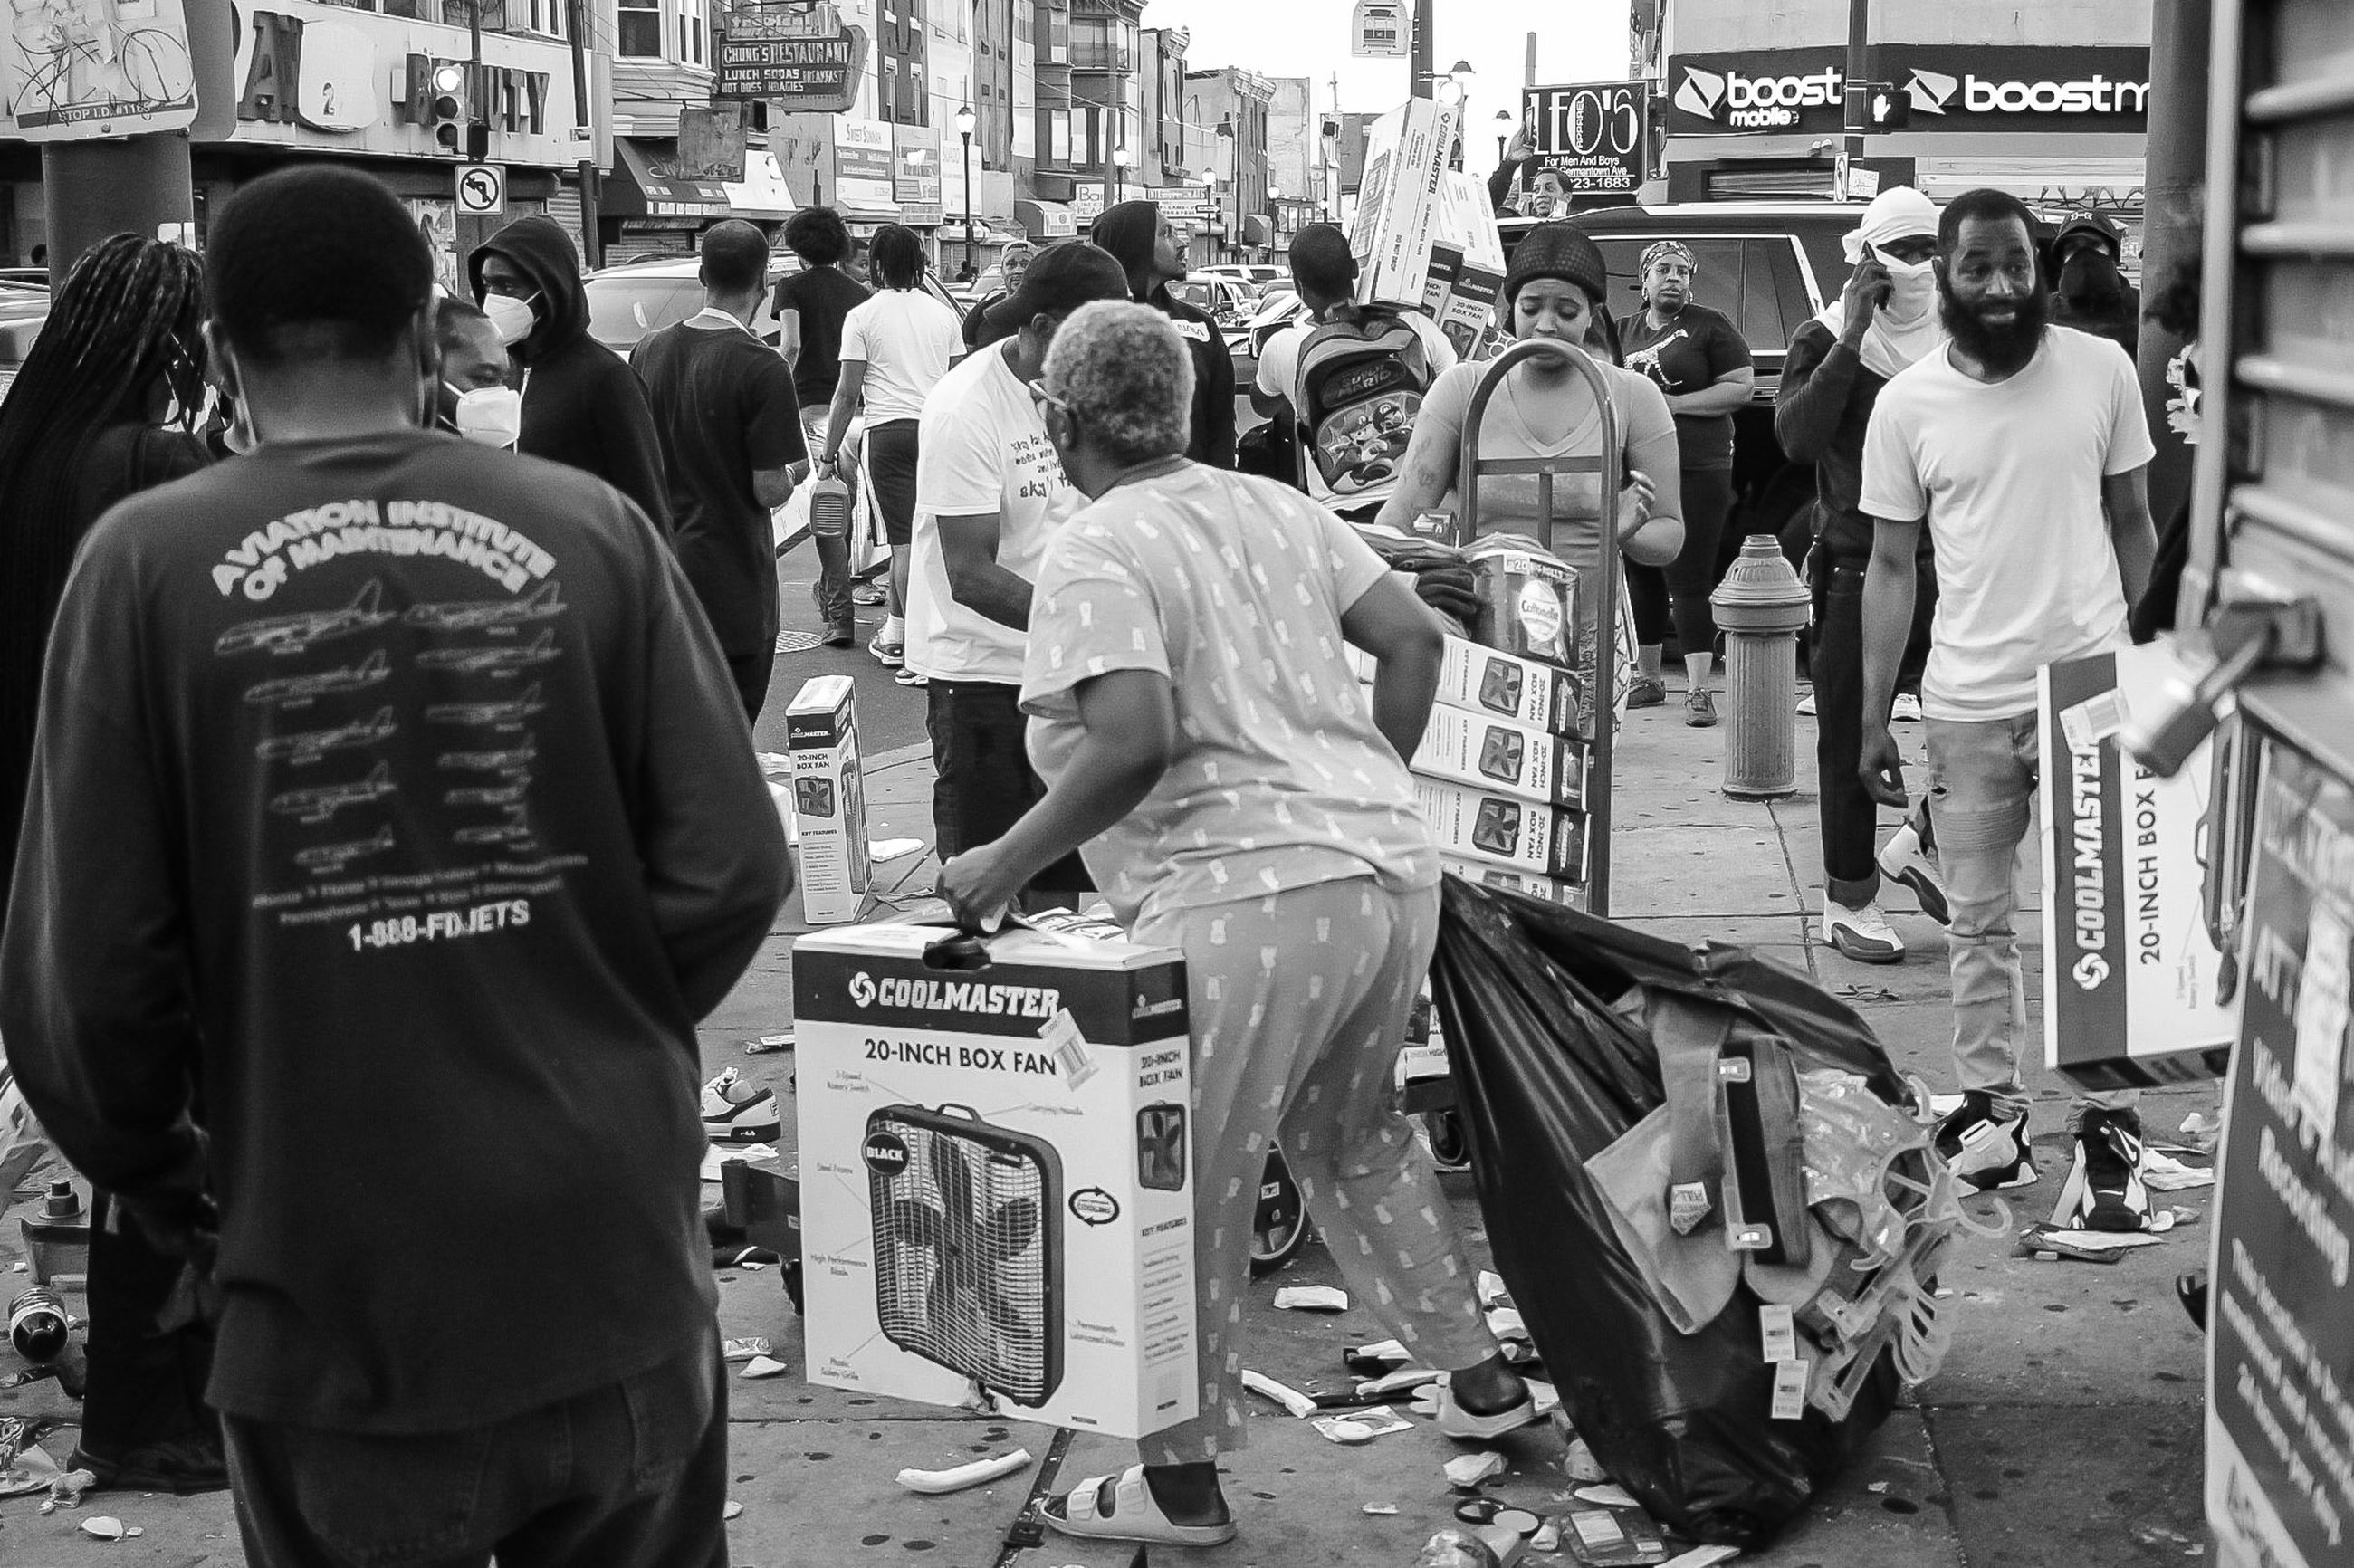 road, street, crowd, group of people, black and white, infrastructure, architecture, city, monochrome, monochrome photography, men, large group of people, built structure, building exterior, rear view, women, adult, text, black, day, city life, lifestyles, person, clothing